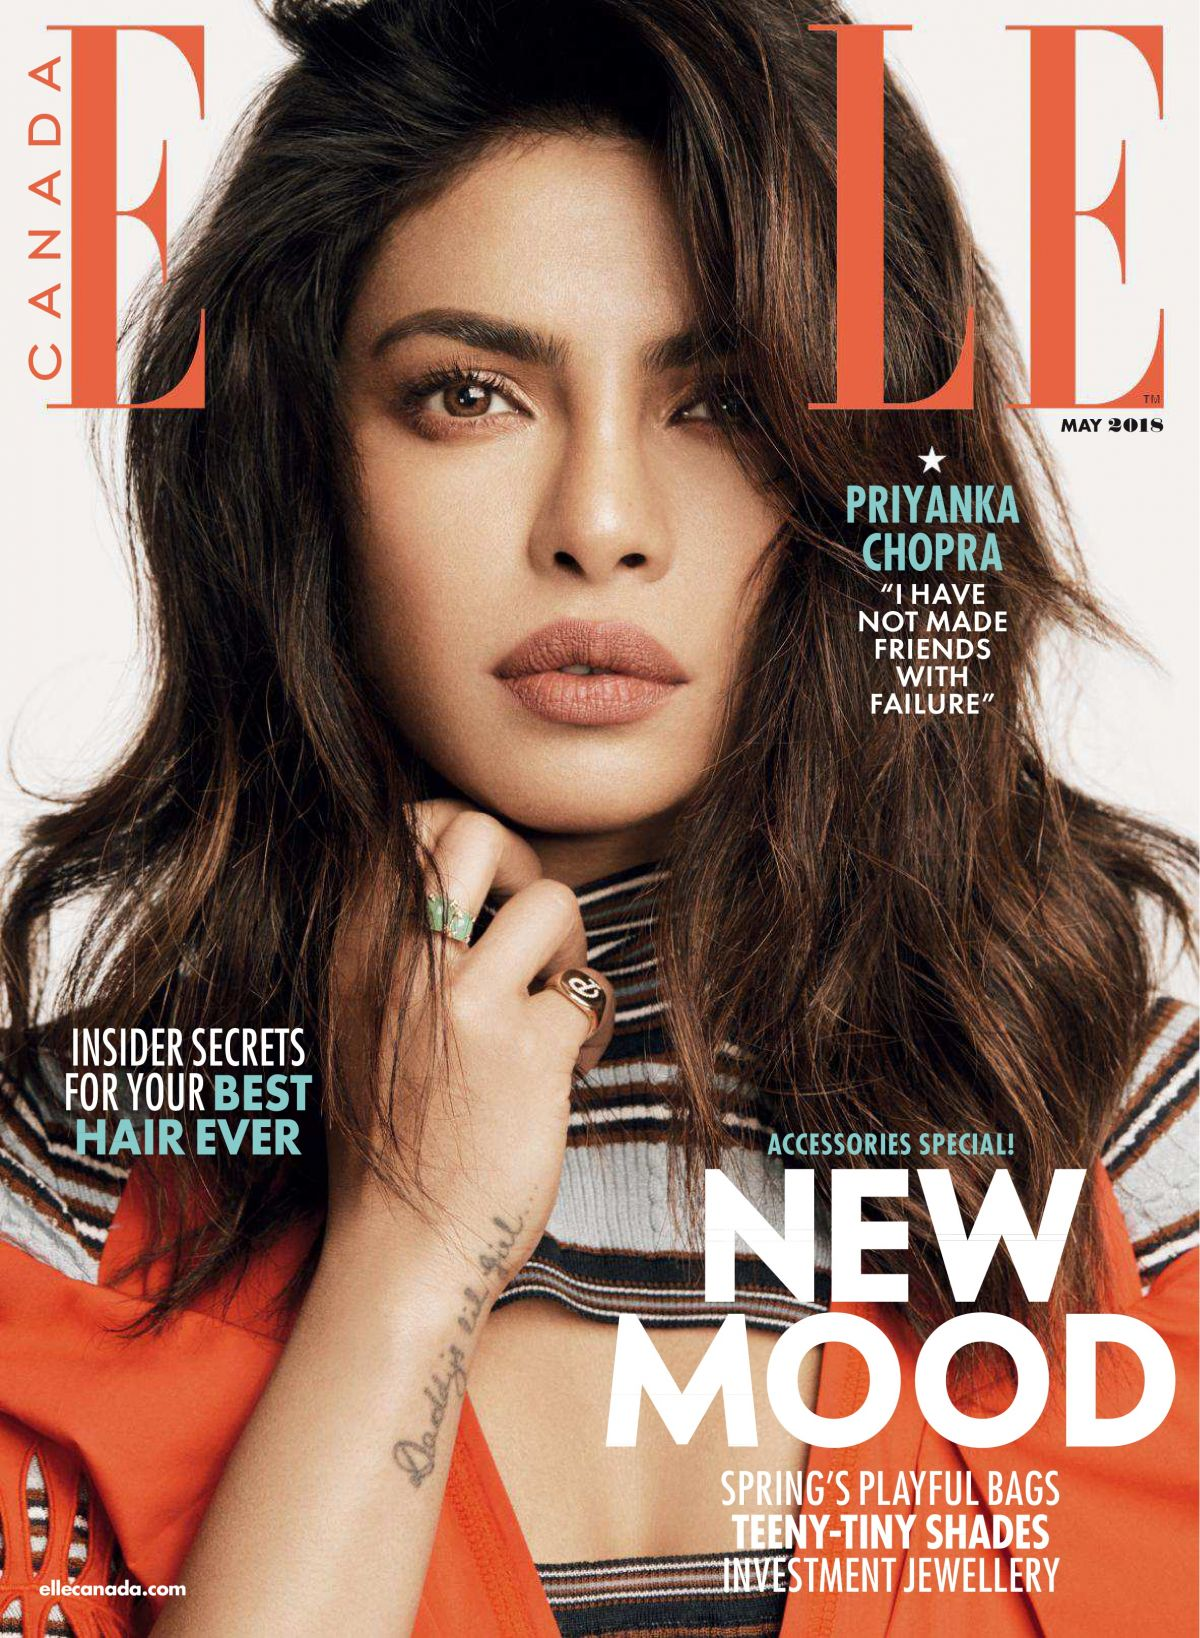 Elle Magazine France February March: PRIYANKA CHOPRA In Elle Magazine, Canada May 2018